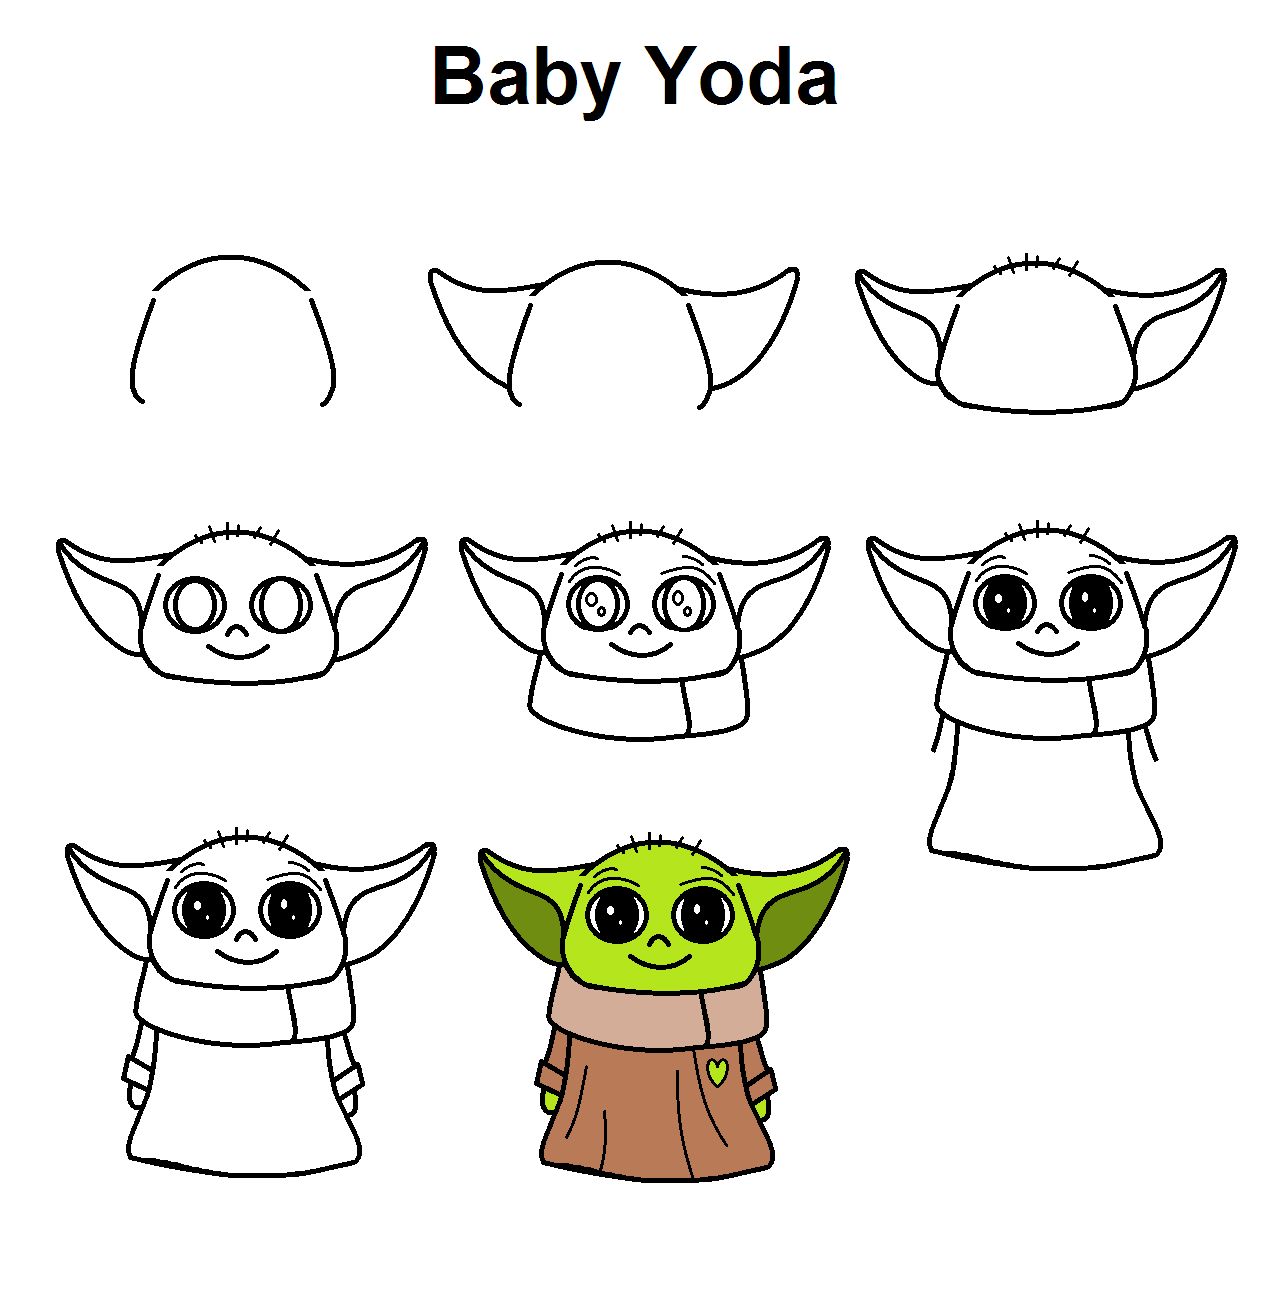 Grogu Baby Yoda Easy Doodles Drawings Cute Easy Drawings Easy Drawings